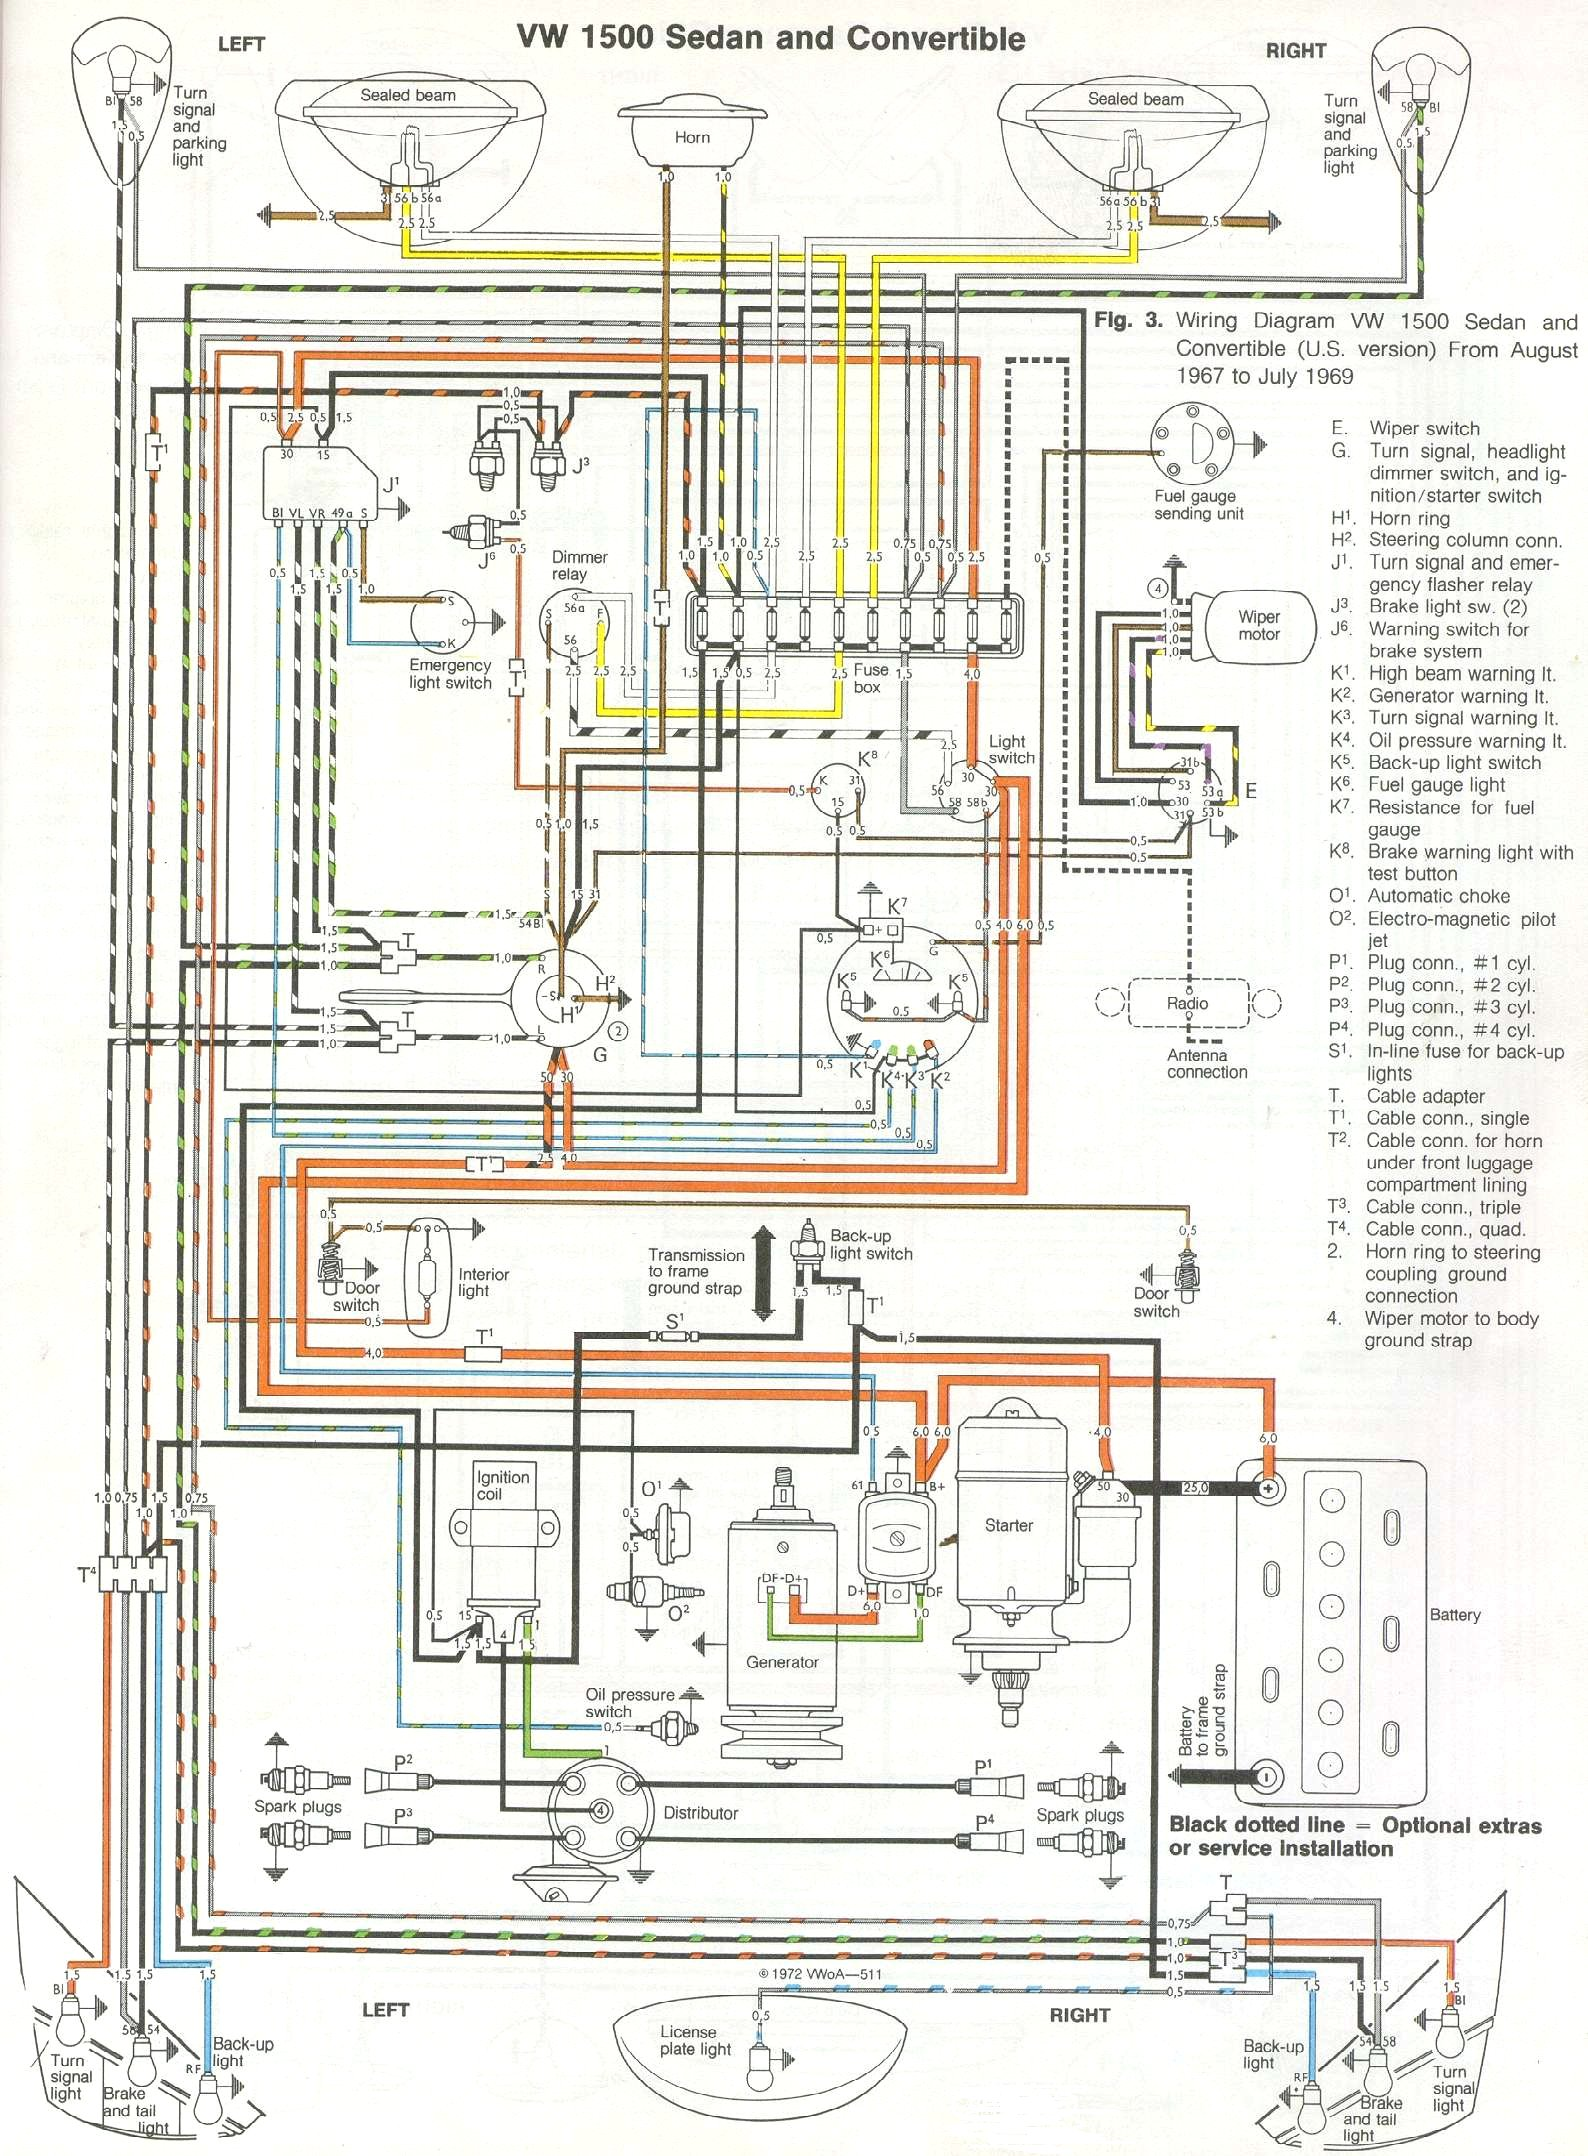 Vw Bug Alternator Wiring Harness Diagram Will Be A Thing Dune Buggy 1974 Volkswagen Beetle Simple Rh David Huggett Co Uk Super Schematic